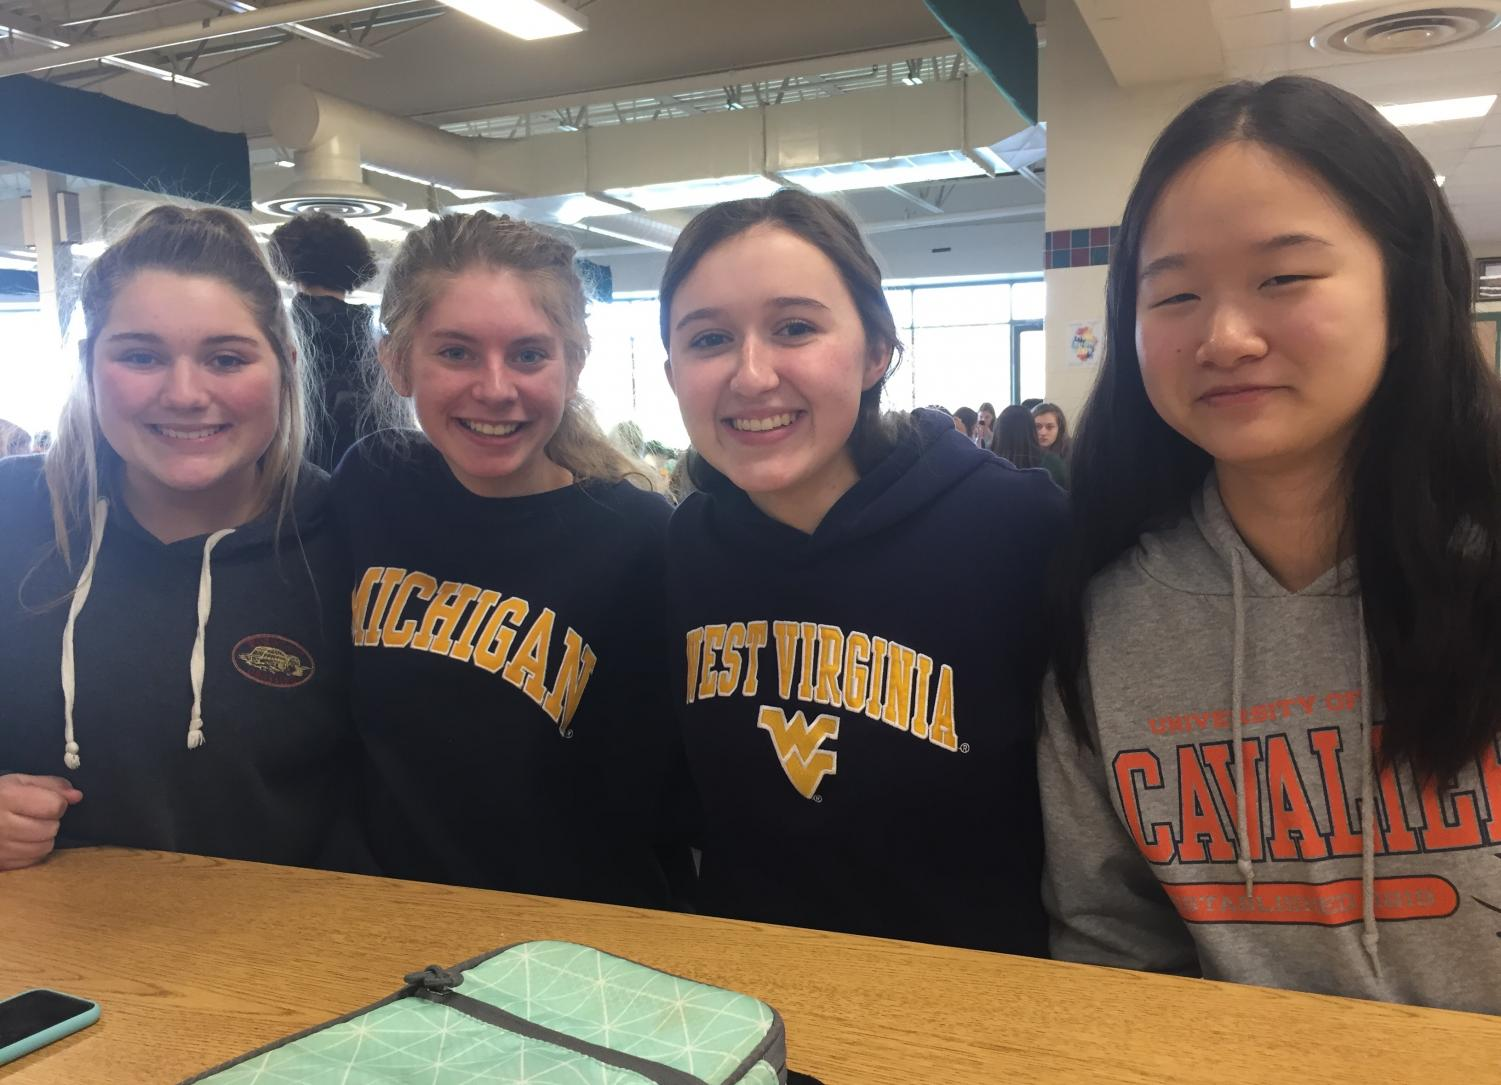 Urbana students celebrate spirit day by wearing college gear